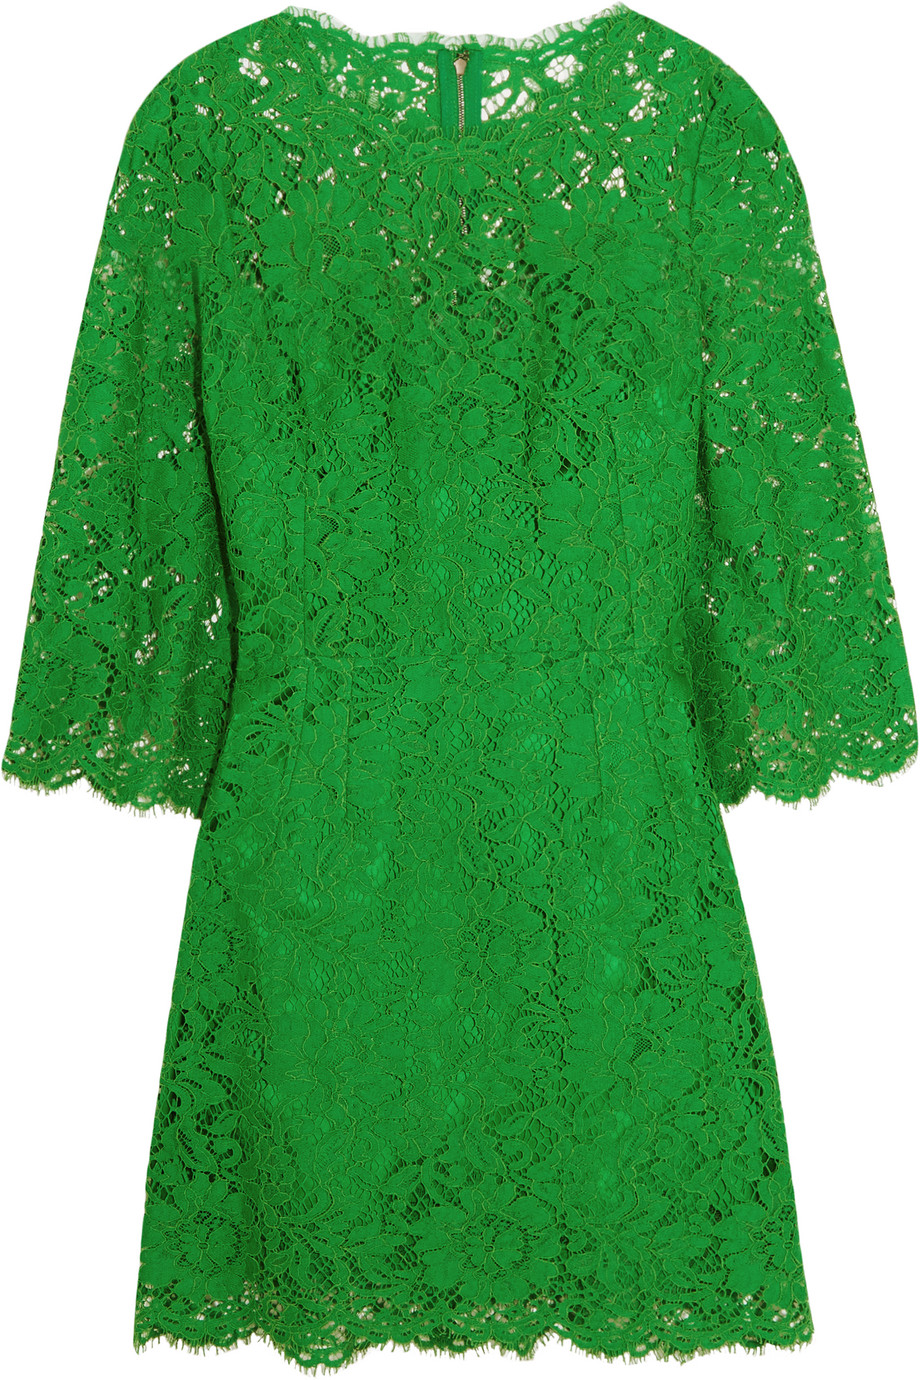 Dolce & Gabbana Floral-Lace Mini Dress, Green, Women's - Floral, Size: 46